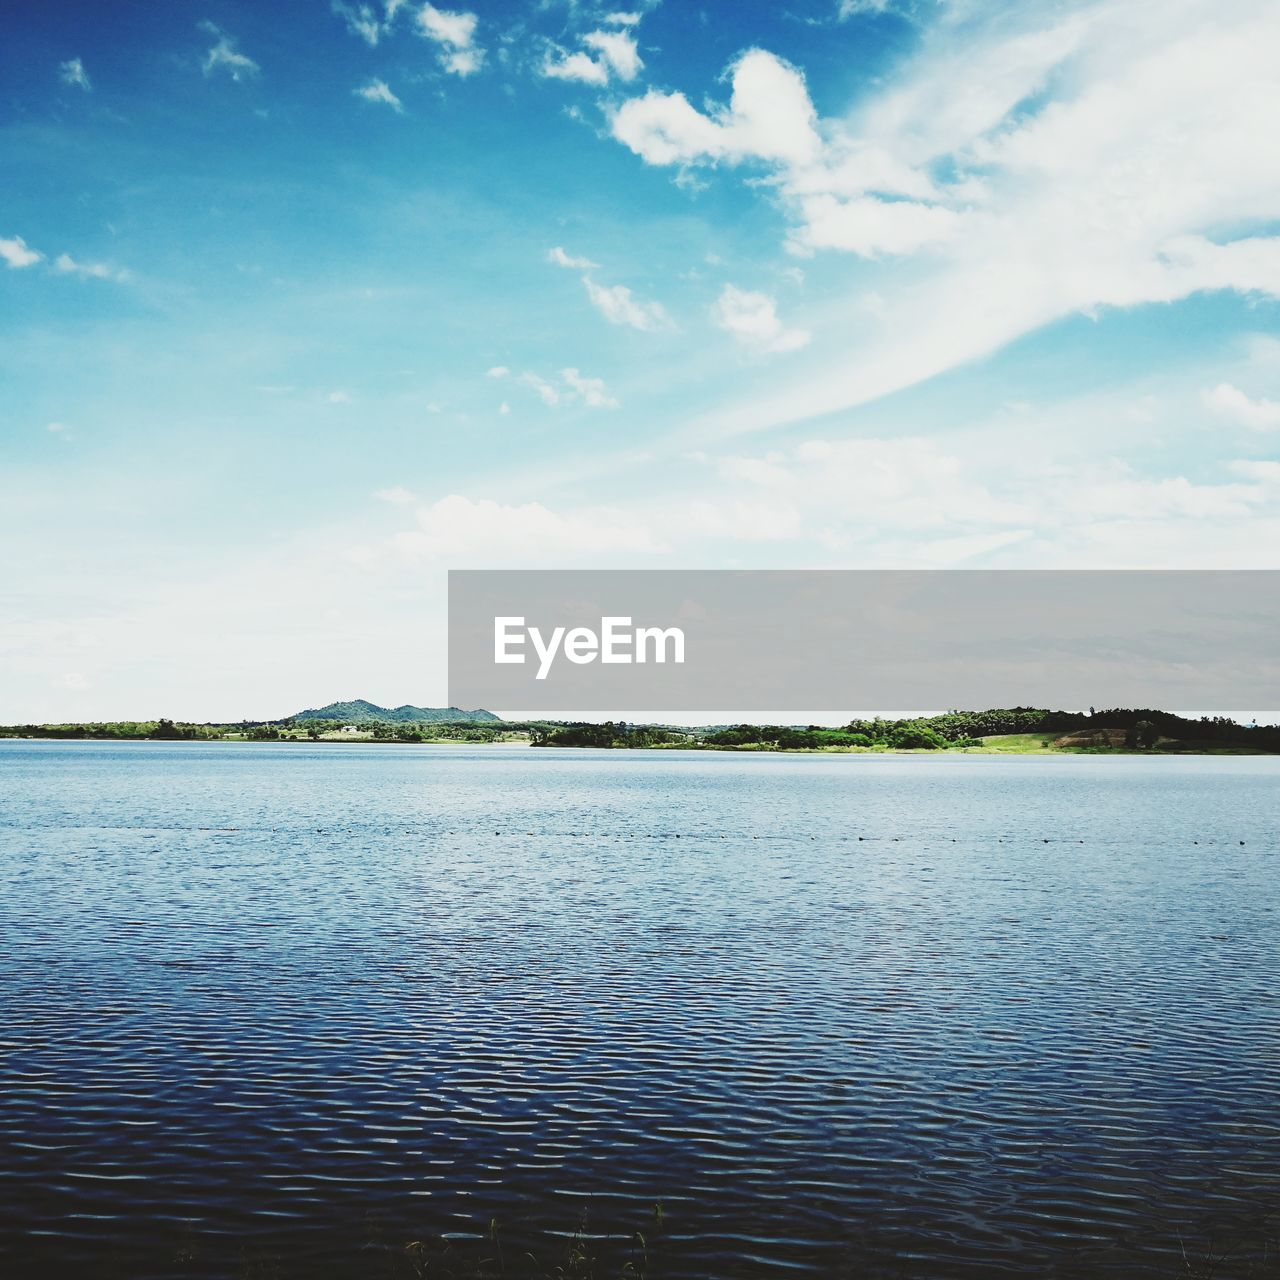 water, sky, cloud - sky, beauty in nature, tranquility, scenics - nature, tranquil scene, nature, waterfront, lake, day, no people, outdoors, idyllic, rippled, beach, reflection